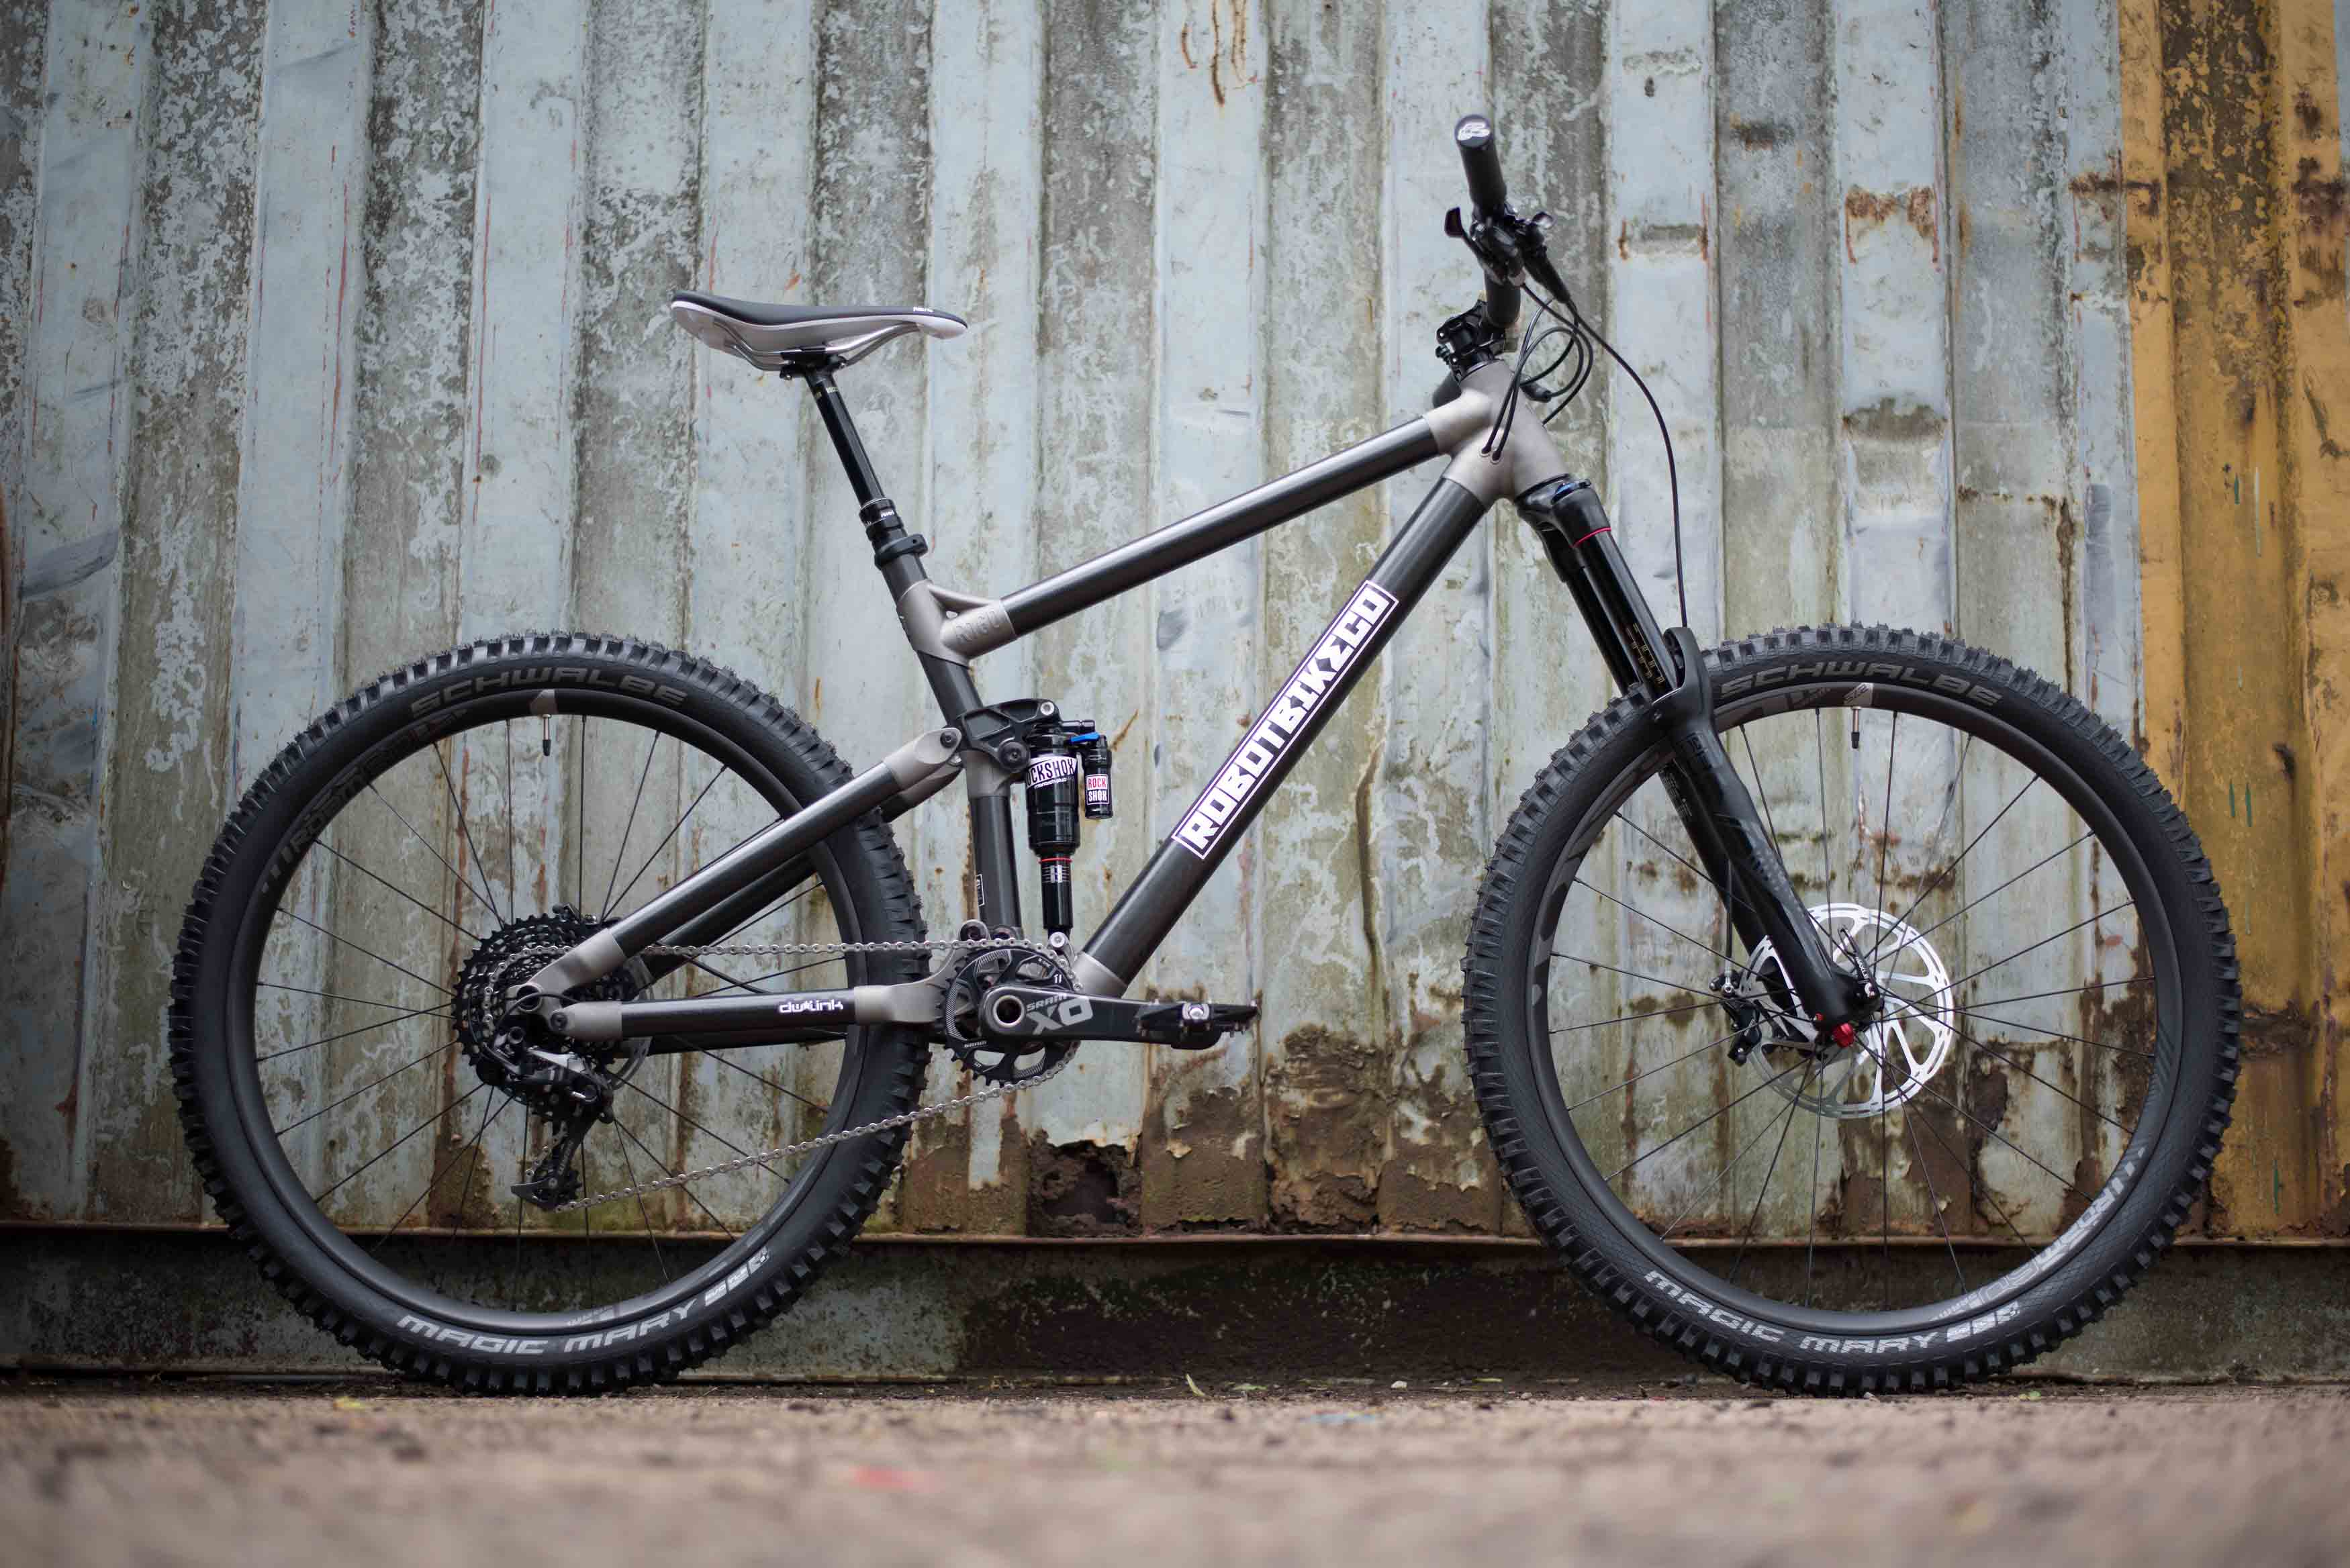 Renishaw_Mountain_Bike.jpg